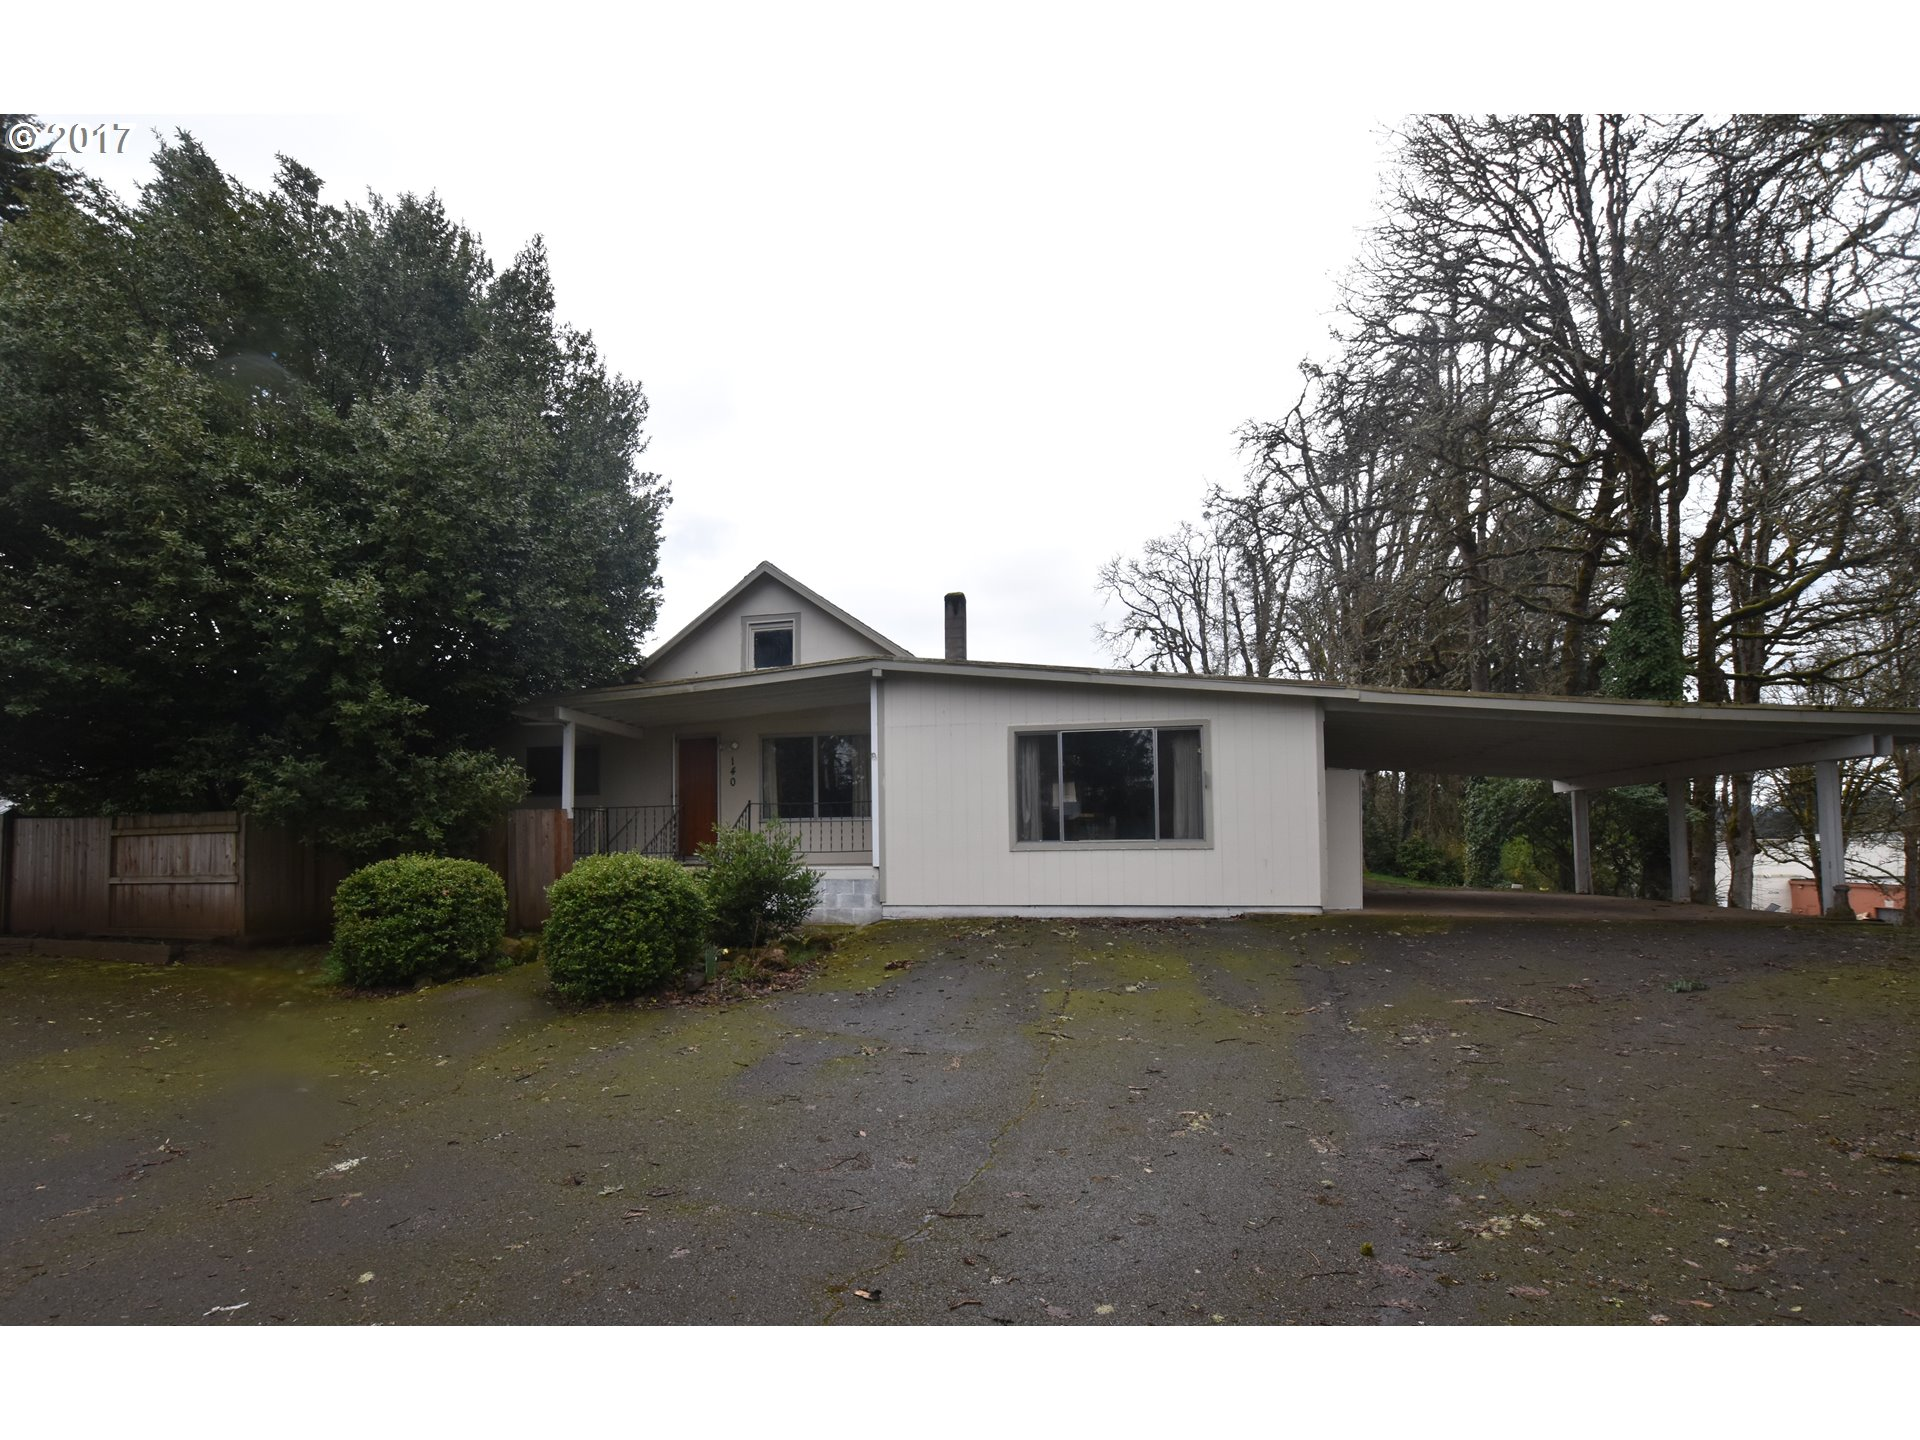 140 N 19TH ST, Cottage Grove, OR 97424